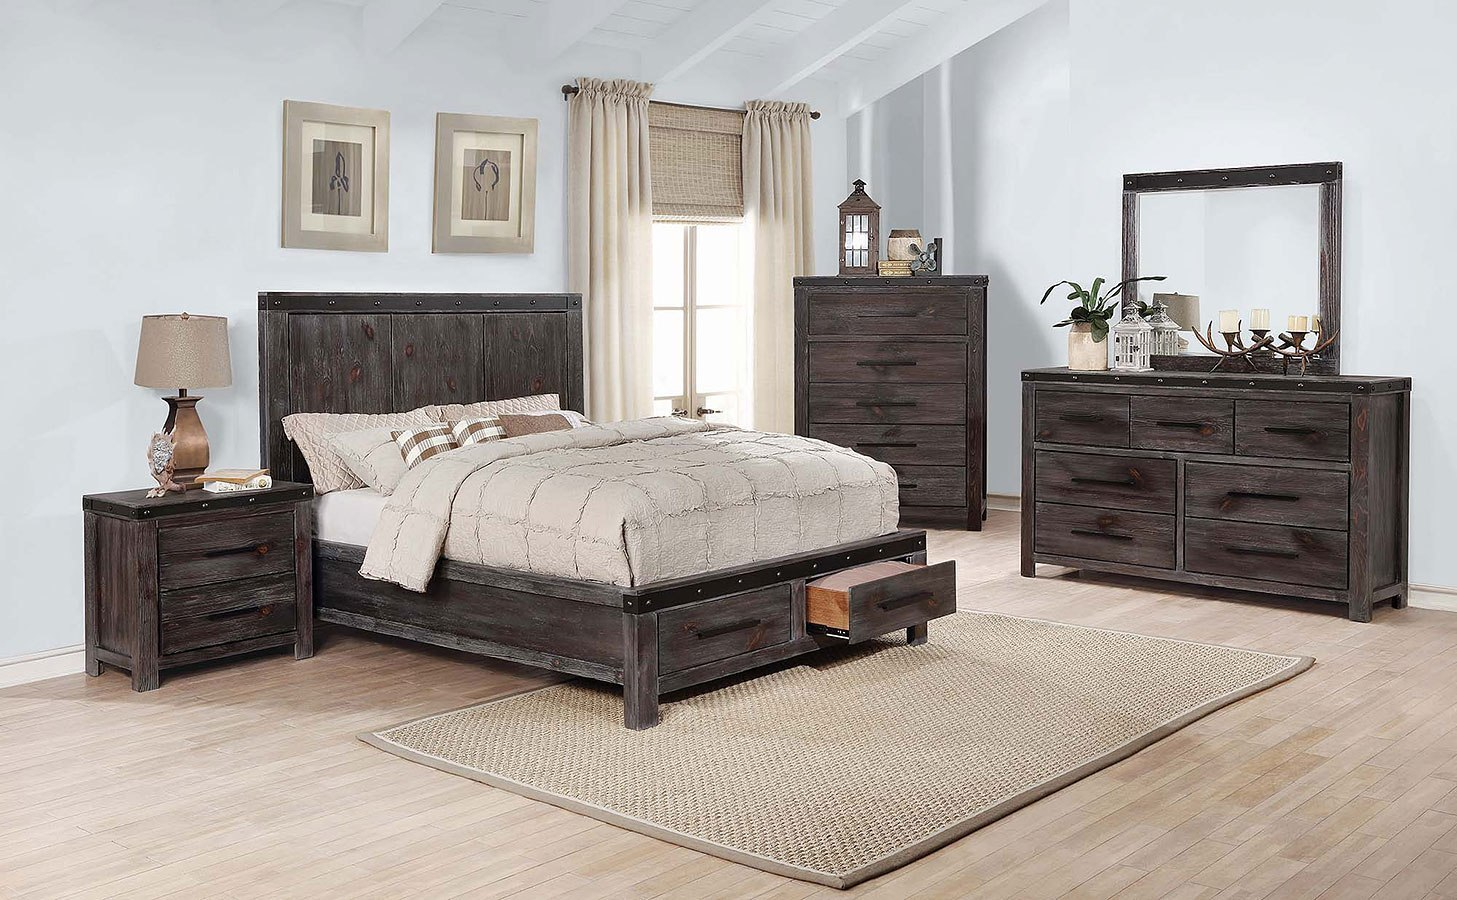 Barkley Storage Bedroom Set Coaster Furniture   Furniture Cart Barkley Storage Bedroom Set